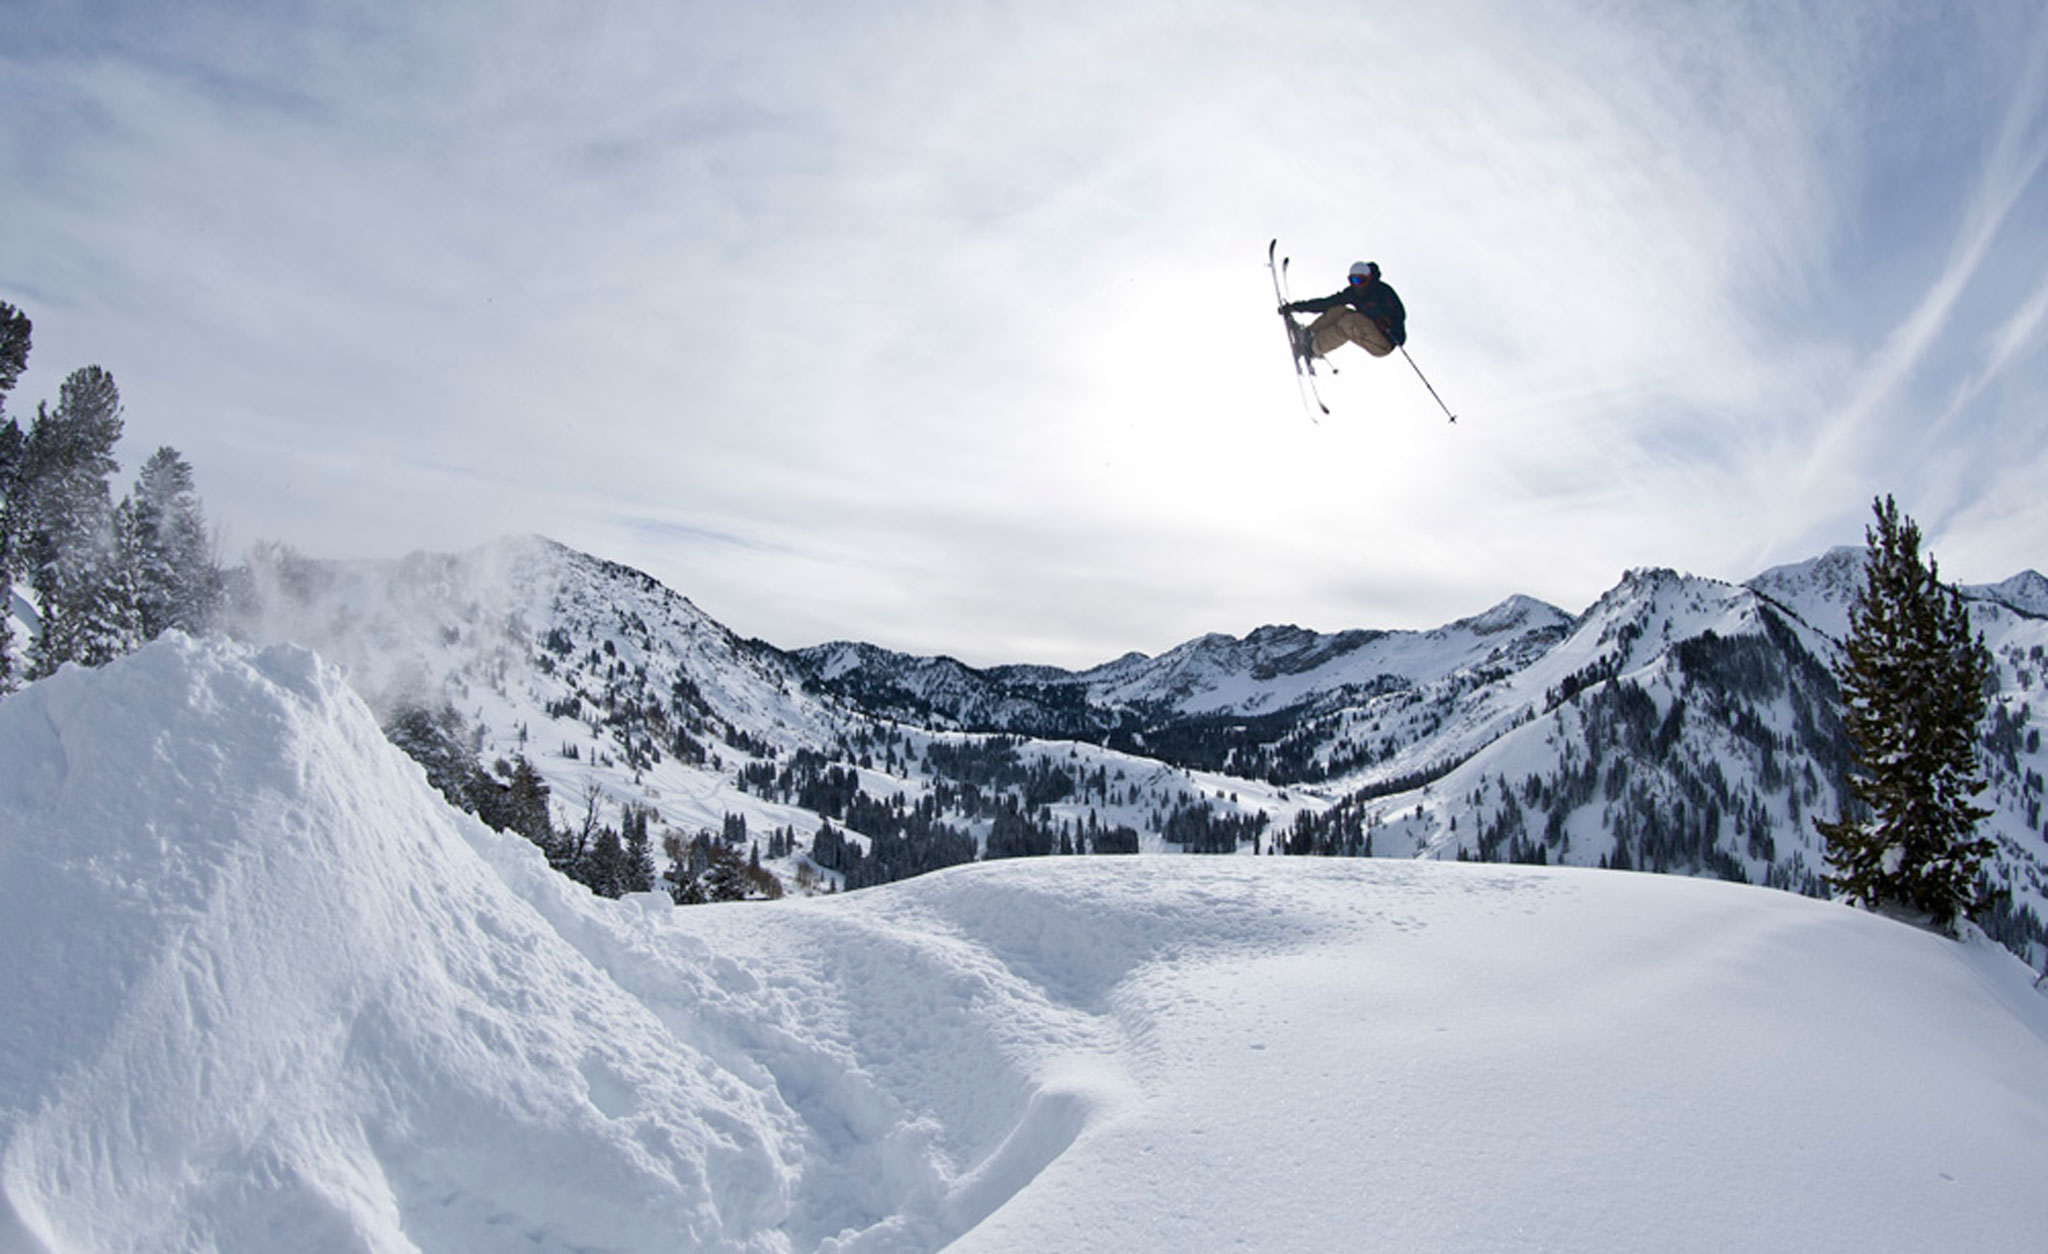 Pep Fujas filming his Real Ski Backcountry part this winter.